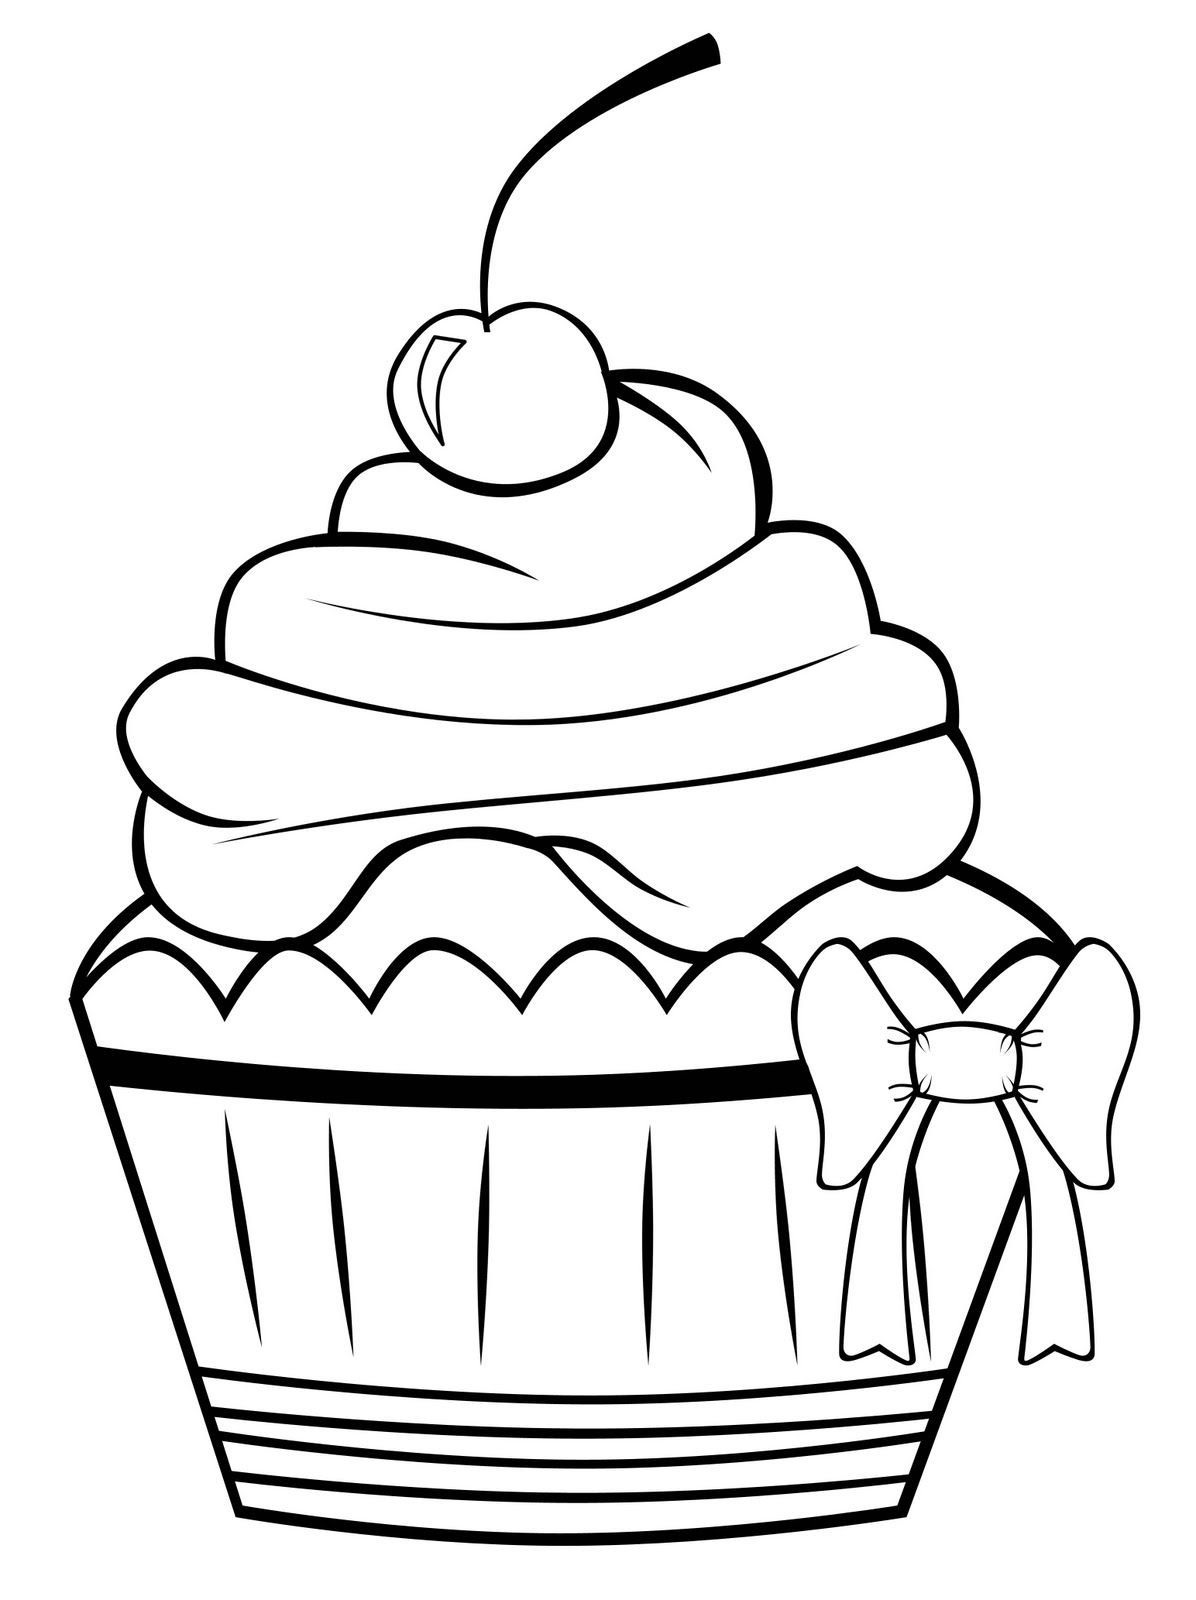 1196x1600 Free Printable Cupcake Coloring Pages For Kids Nifty, Towels